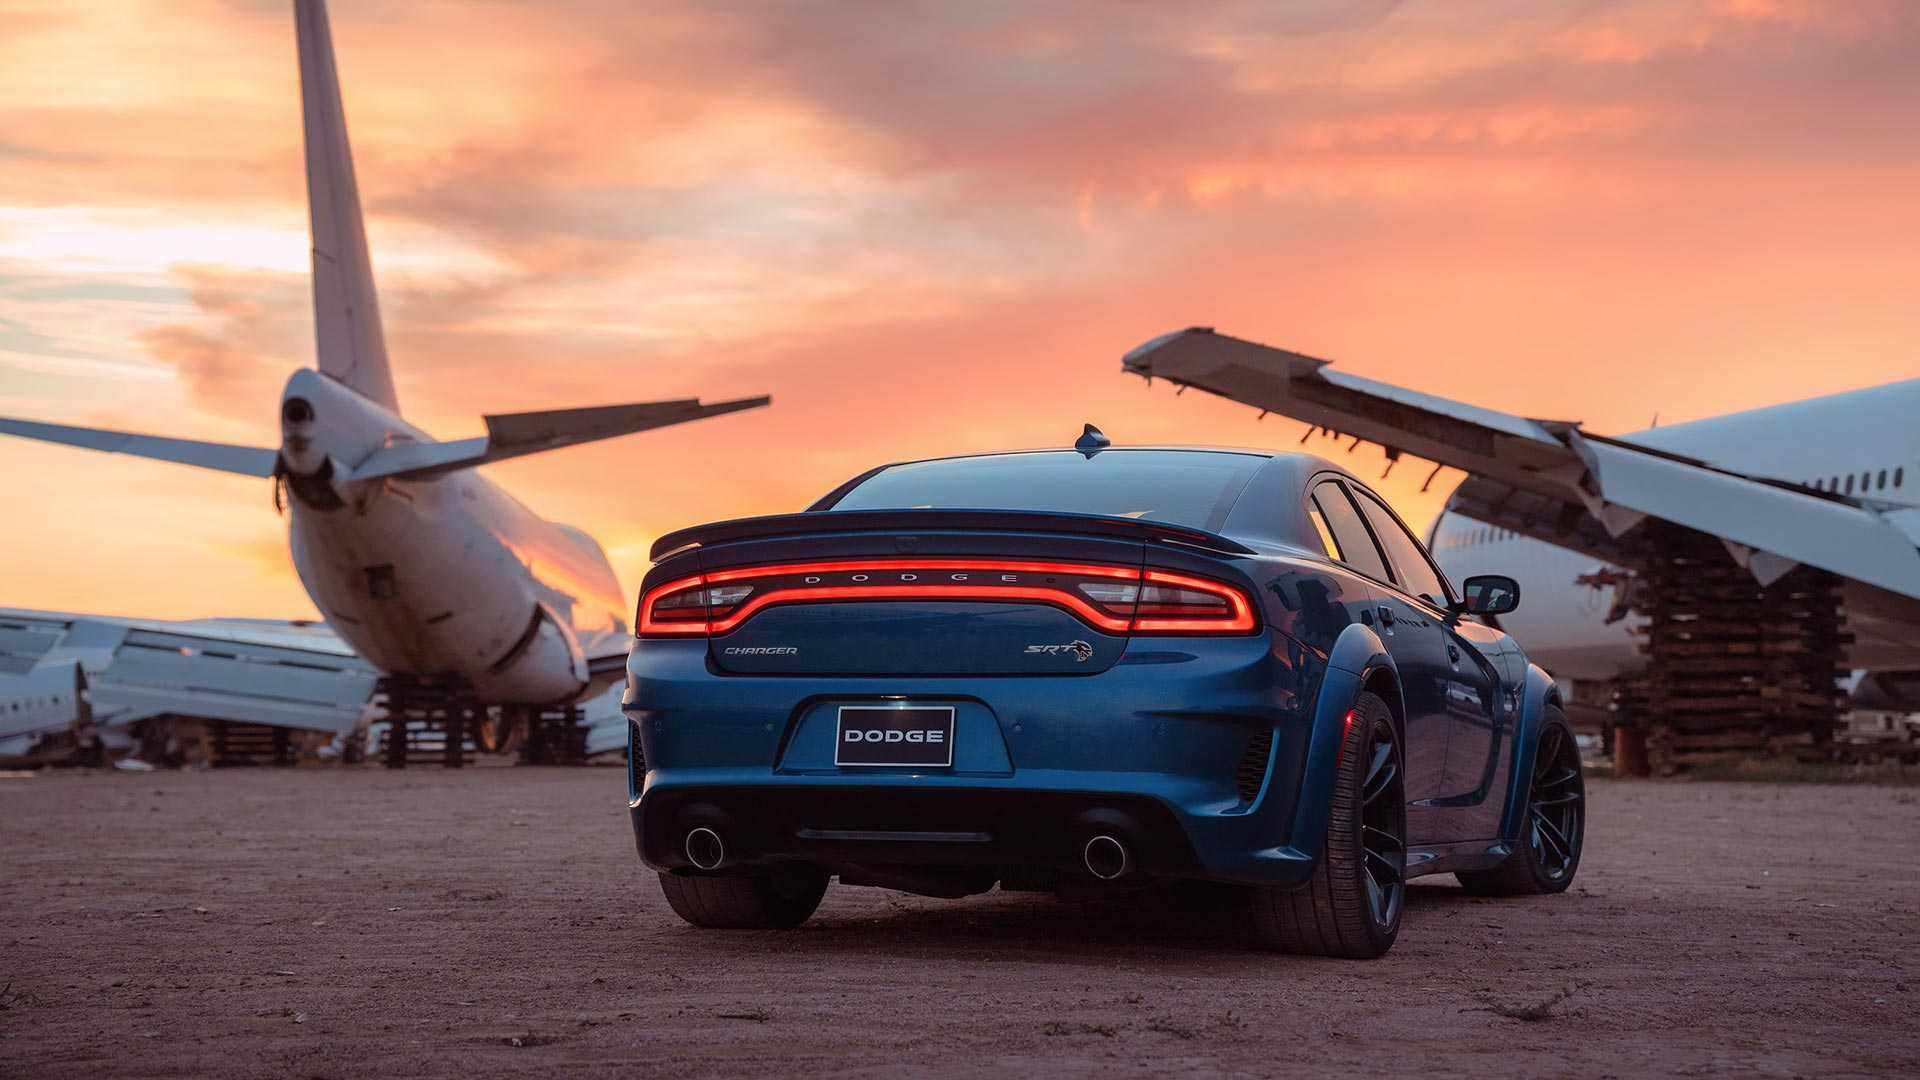 2020 Dodge Charger SRT Hellcat Widebody Rear Wallpapers #45 of 79